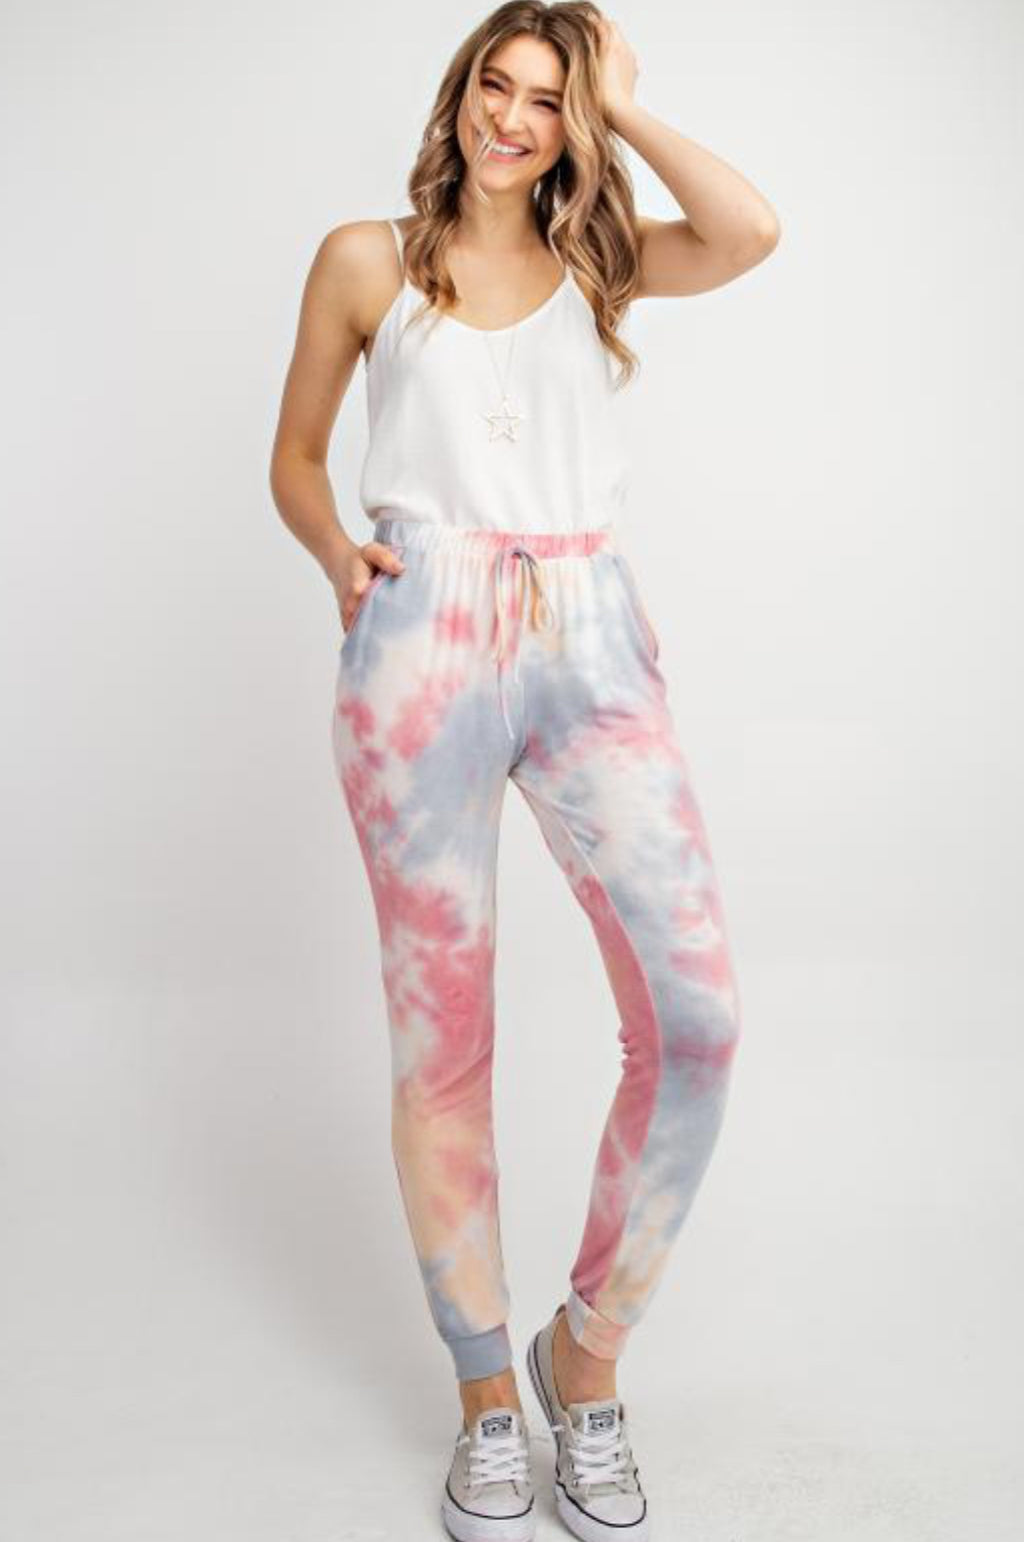 Soft pink and blue tie dye joggers